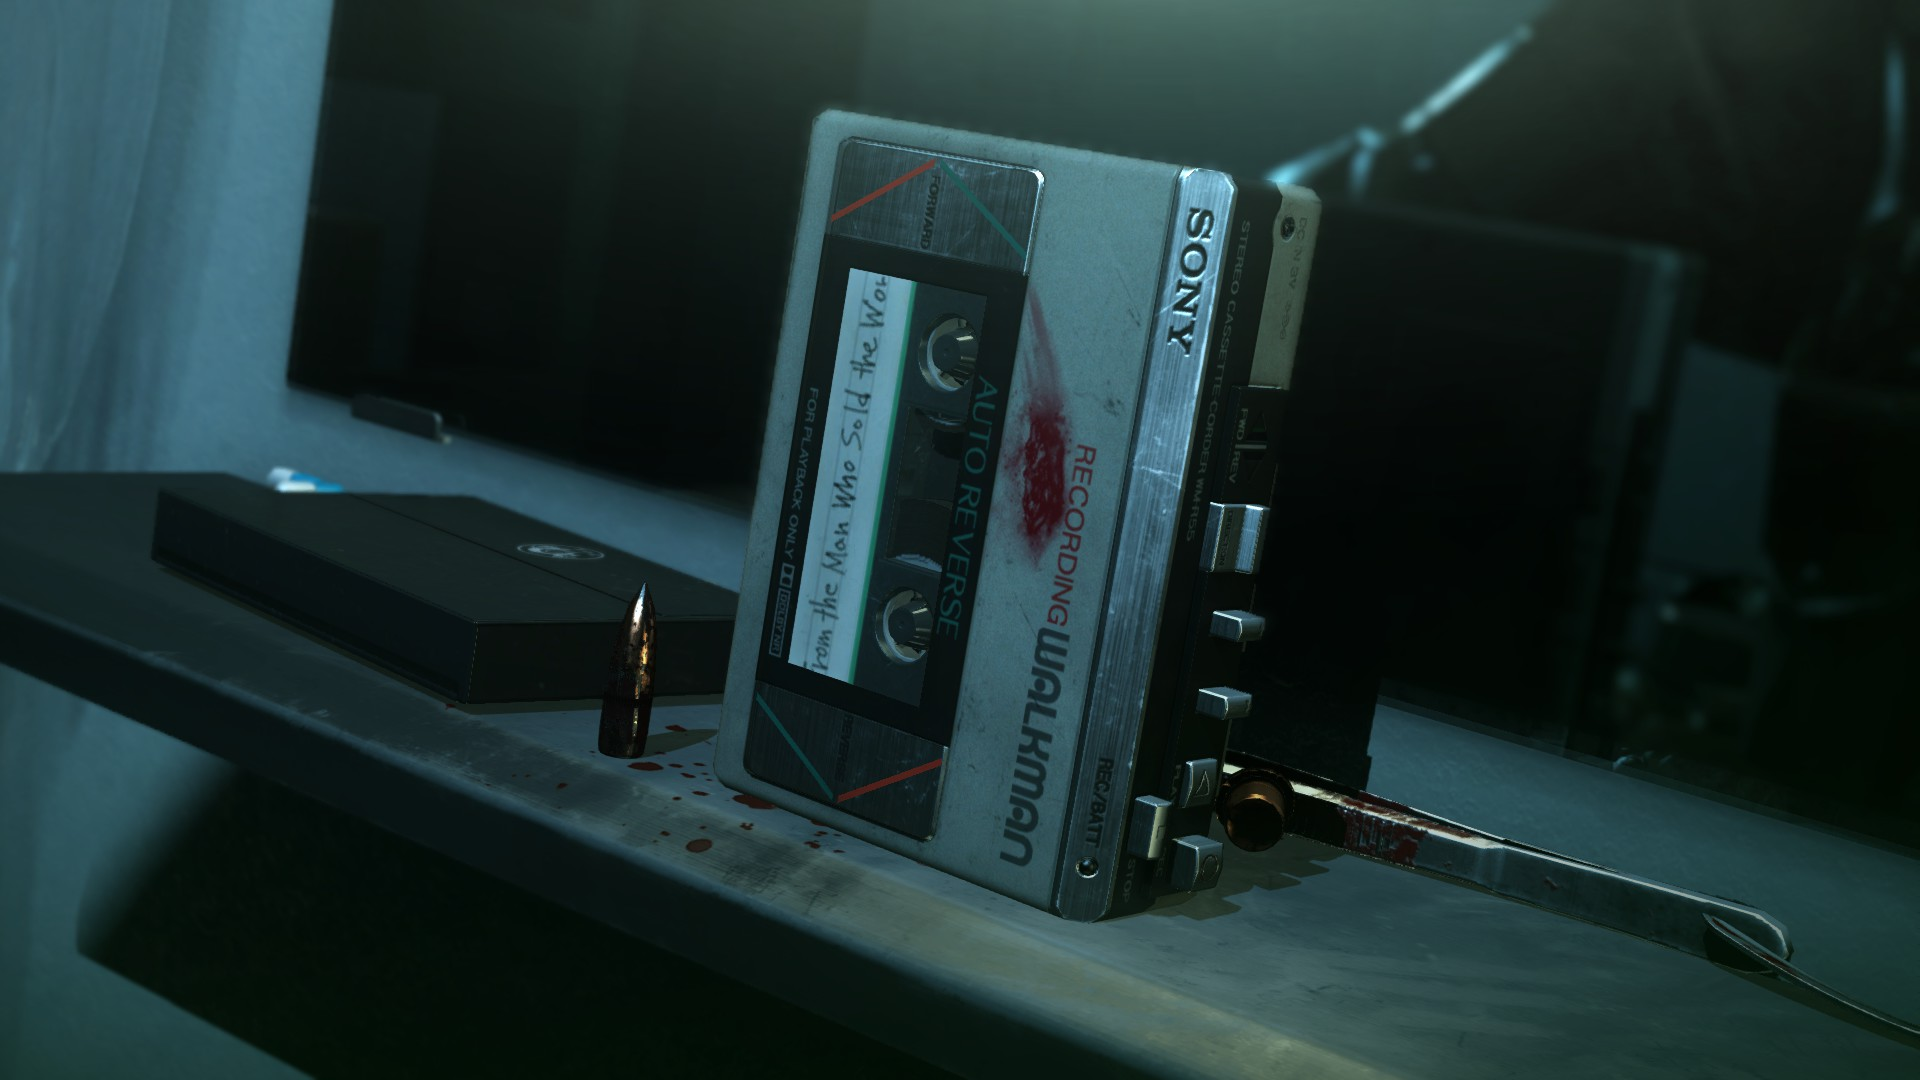 A cassette player with the Man Who Sold the World tape inside.